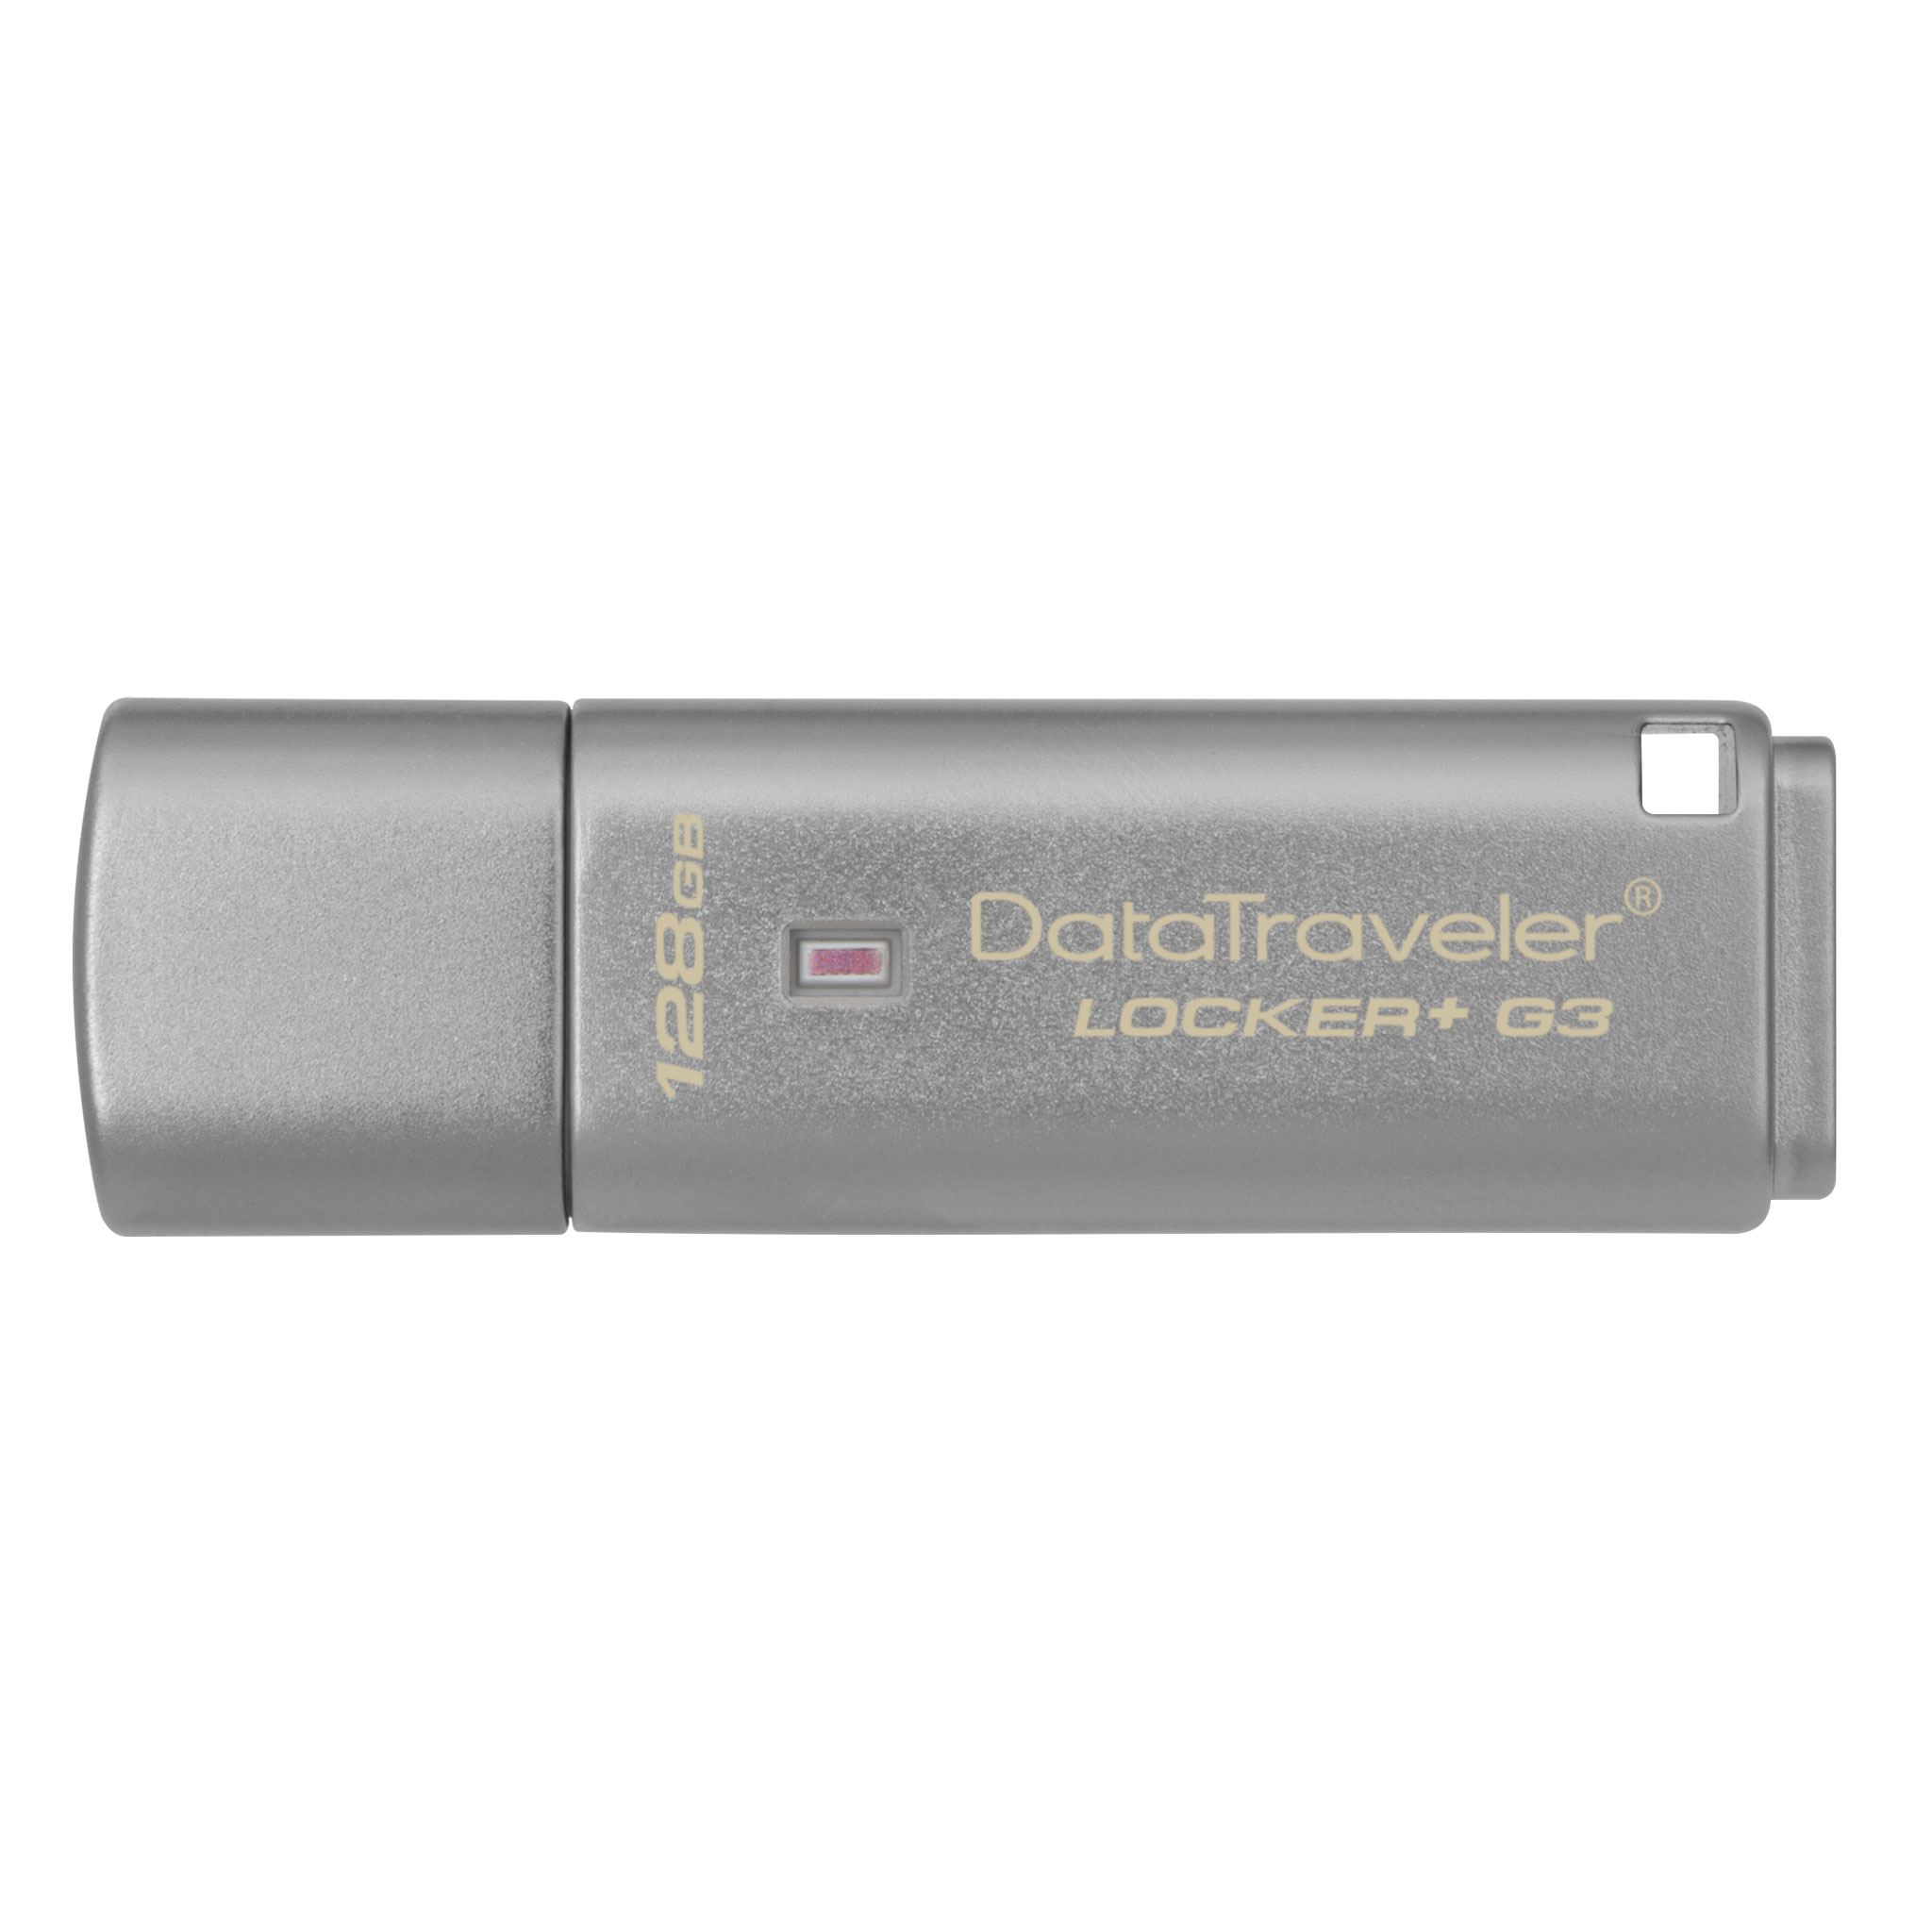 128GB USB 3.0 DT Locker+ G3 (vc. A. Data Security)